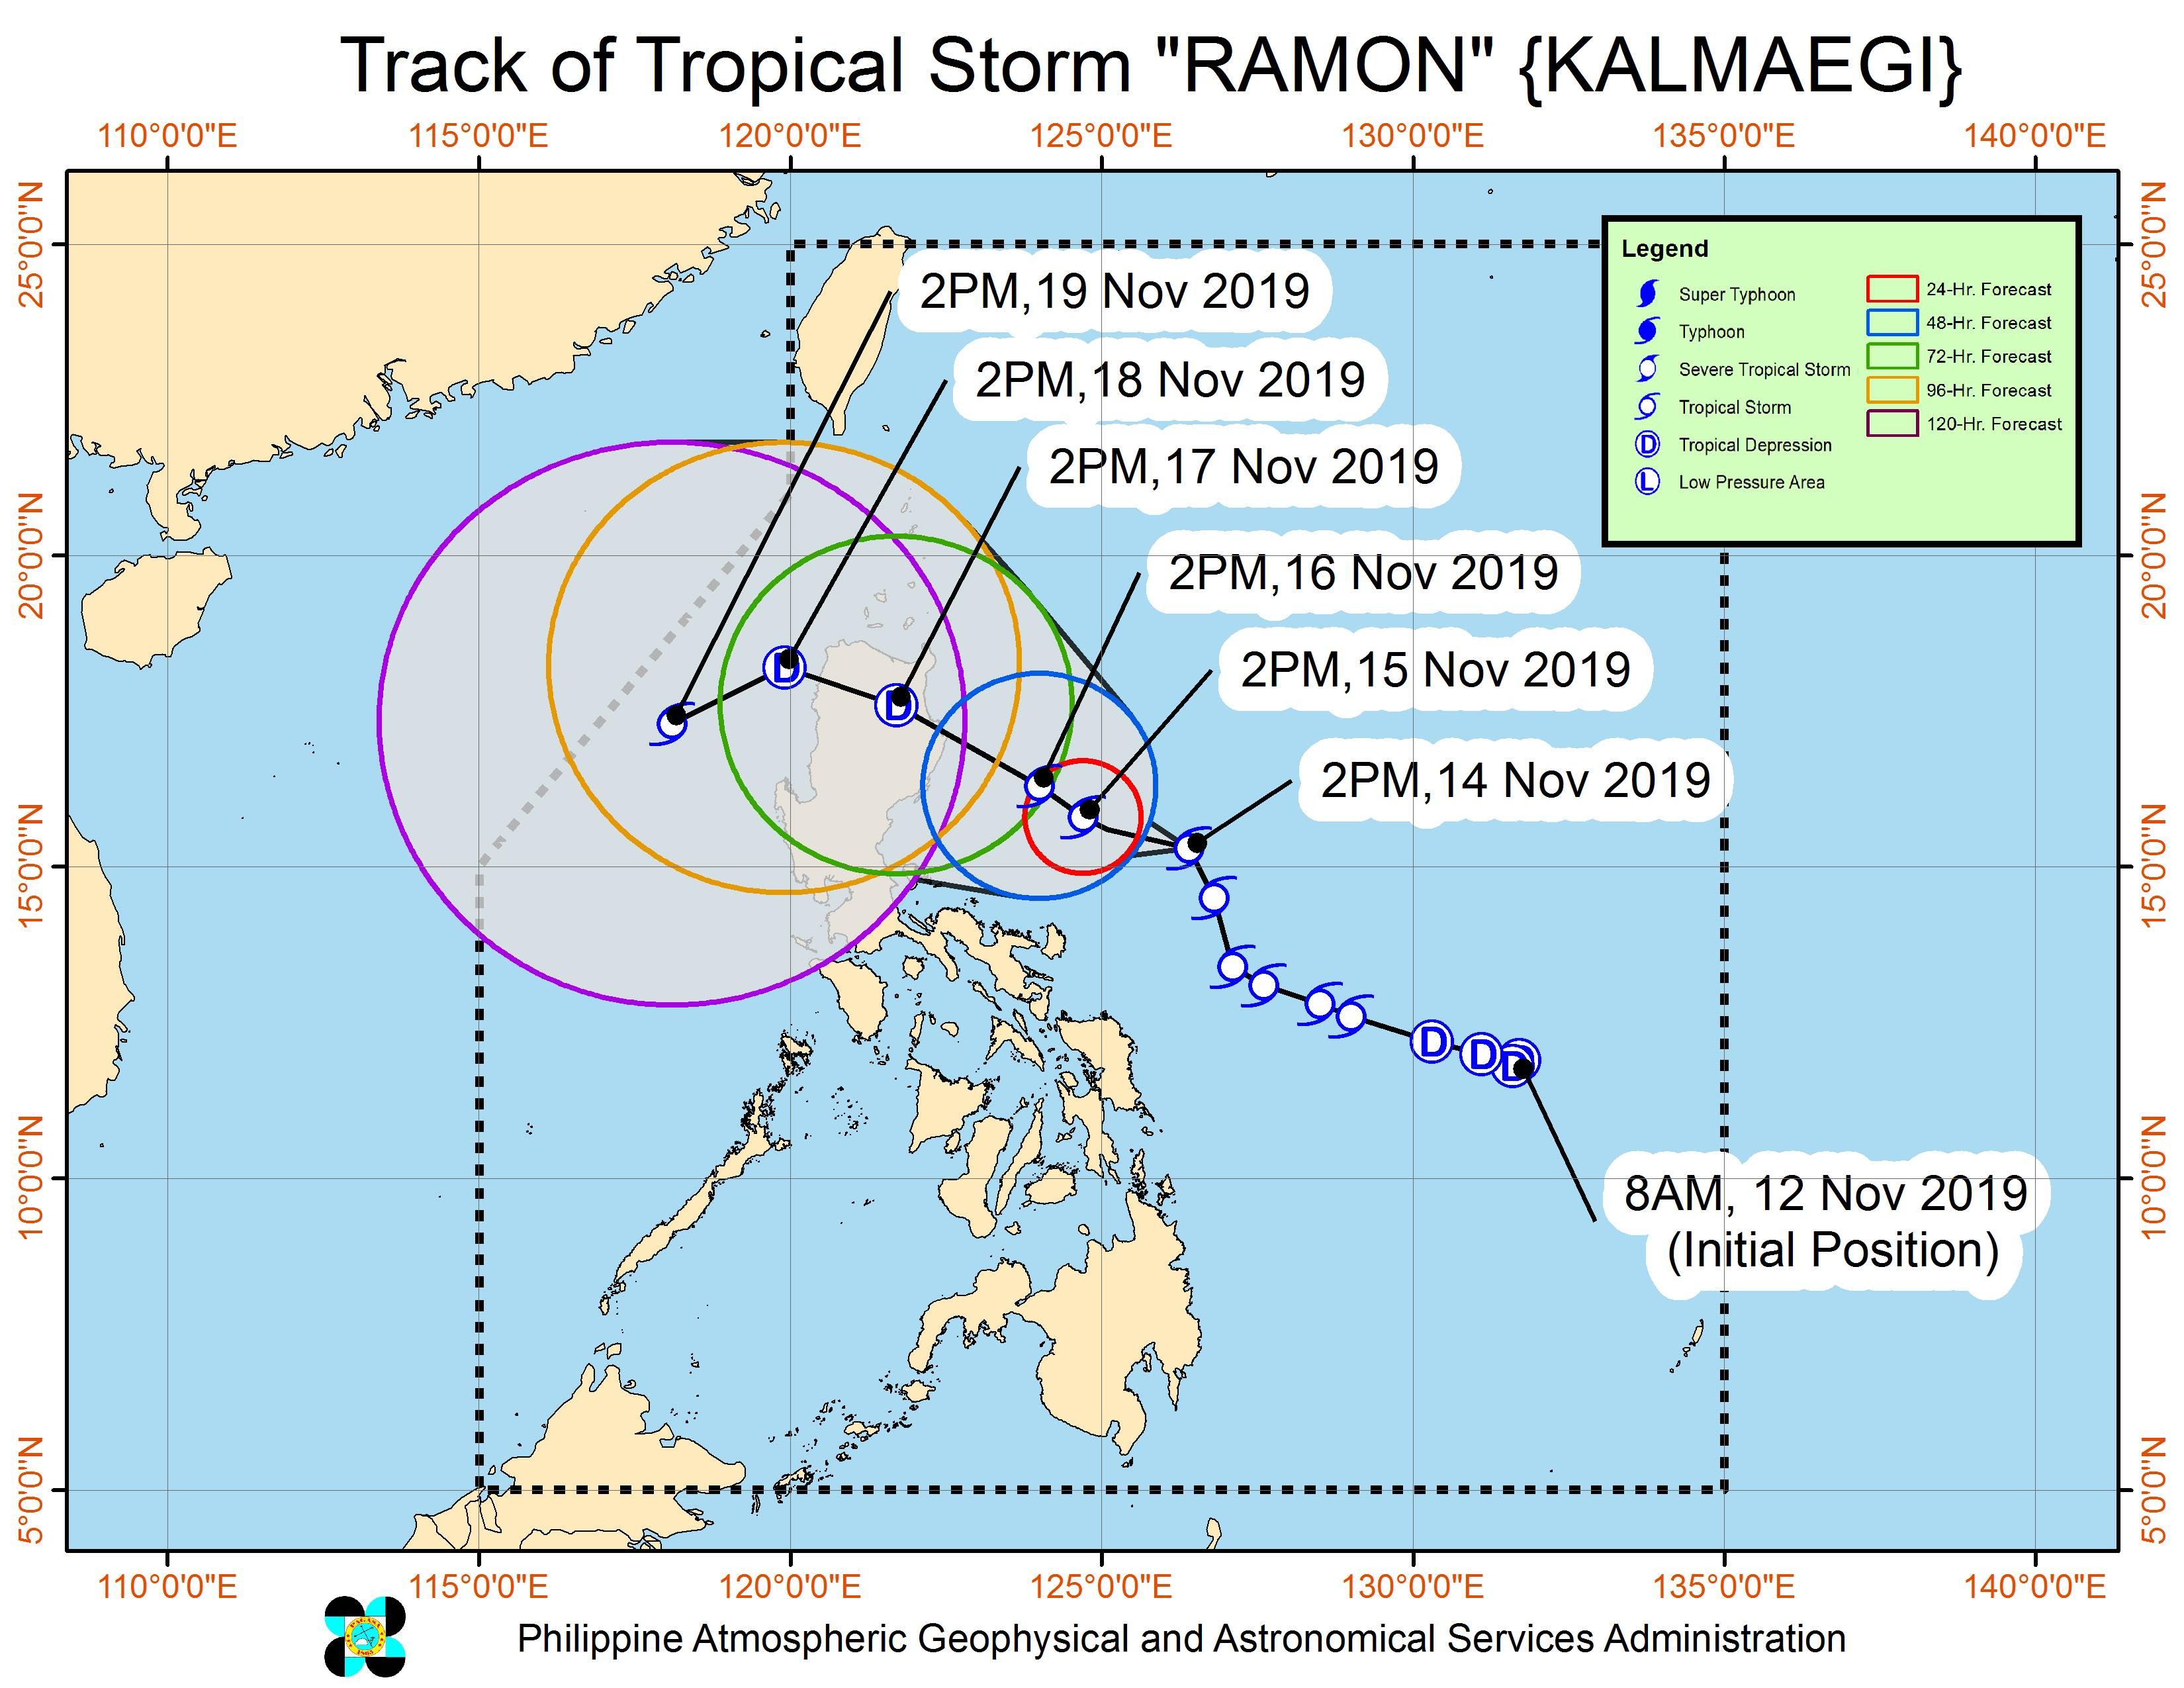 Forecast track of Tropical Storm Ramon (Kalmaegi) as of November 14, 2019, 5 pm. Image from PAGASA